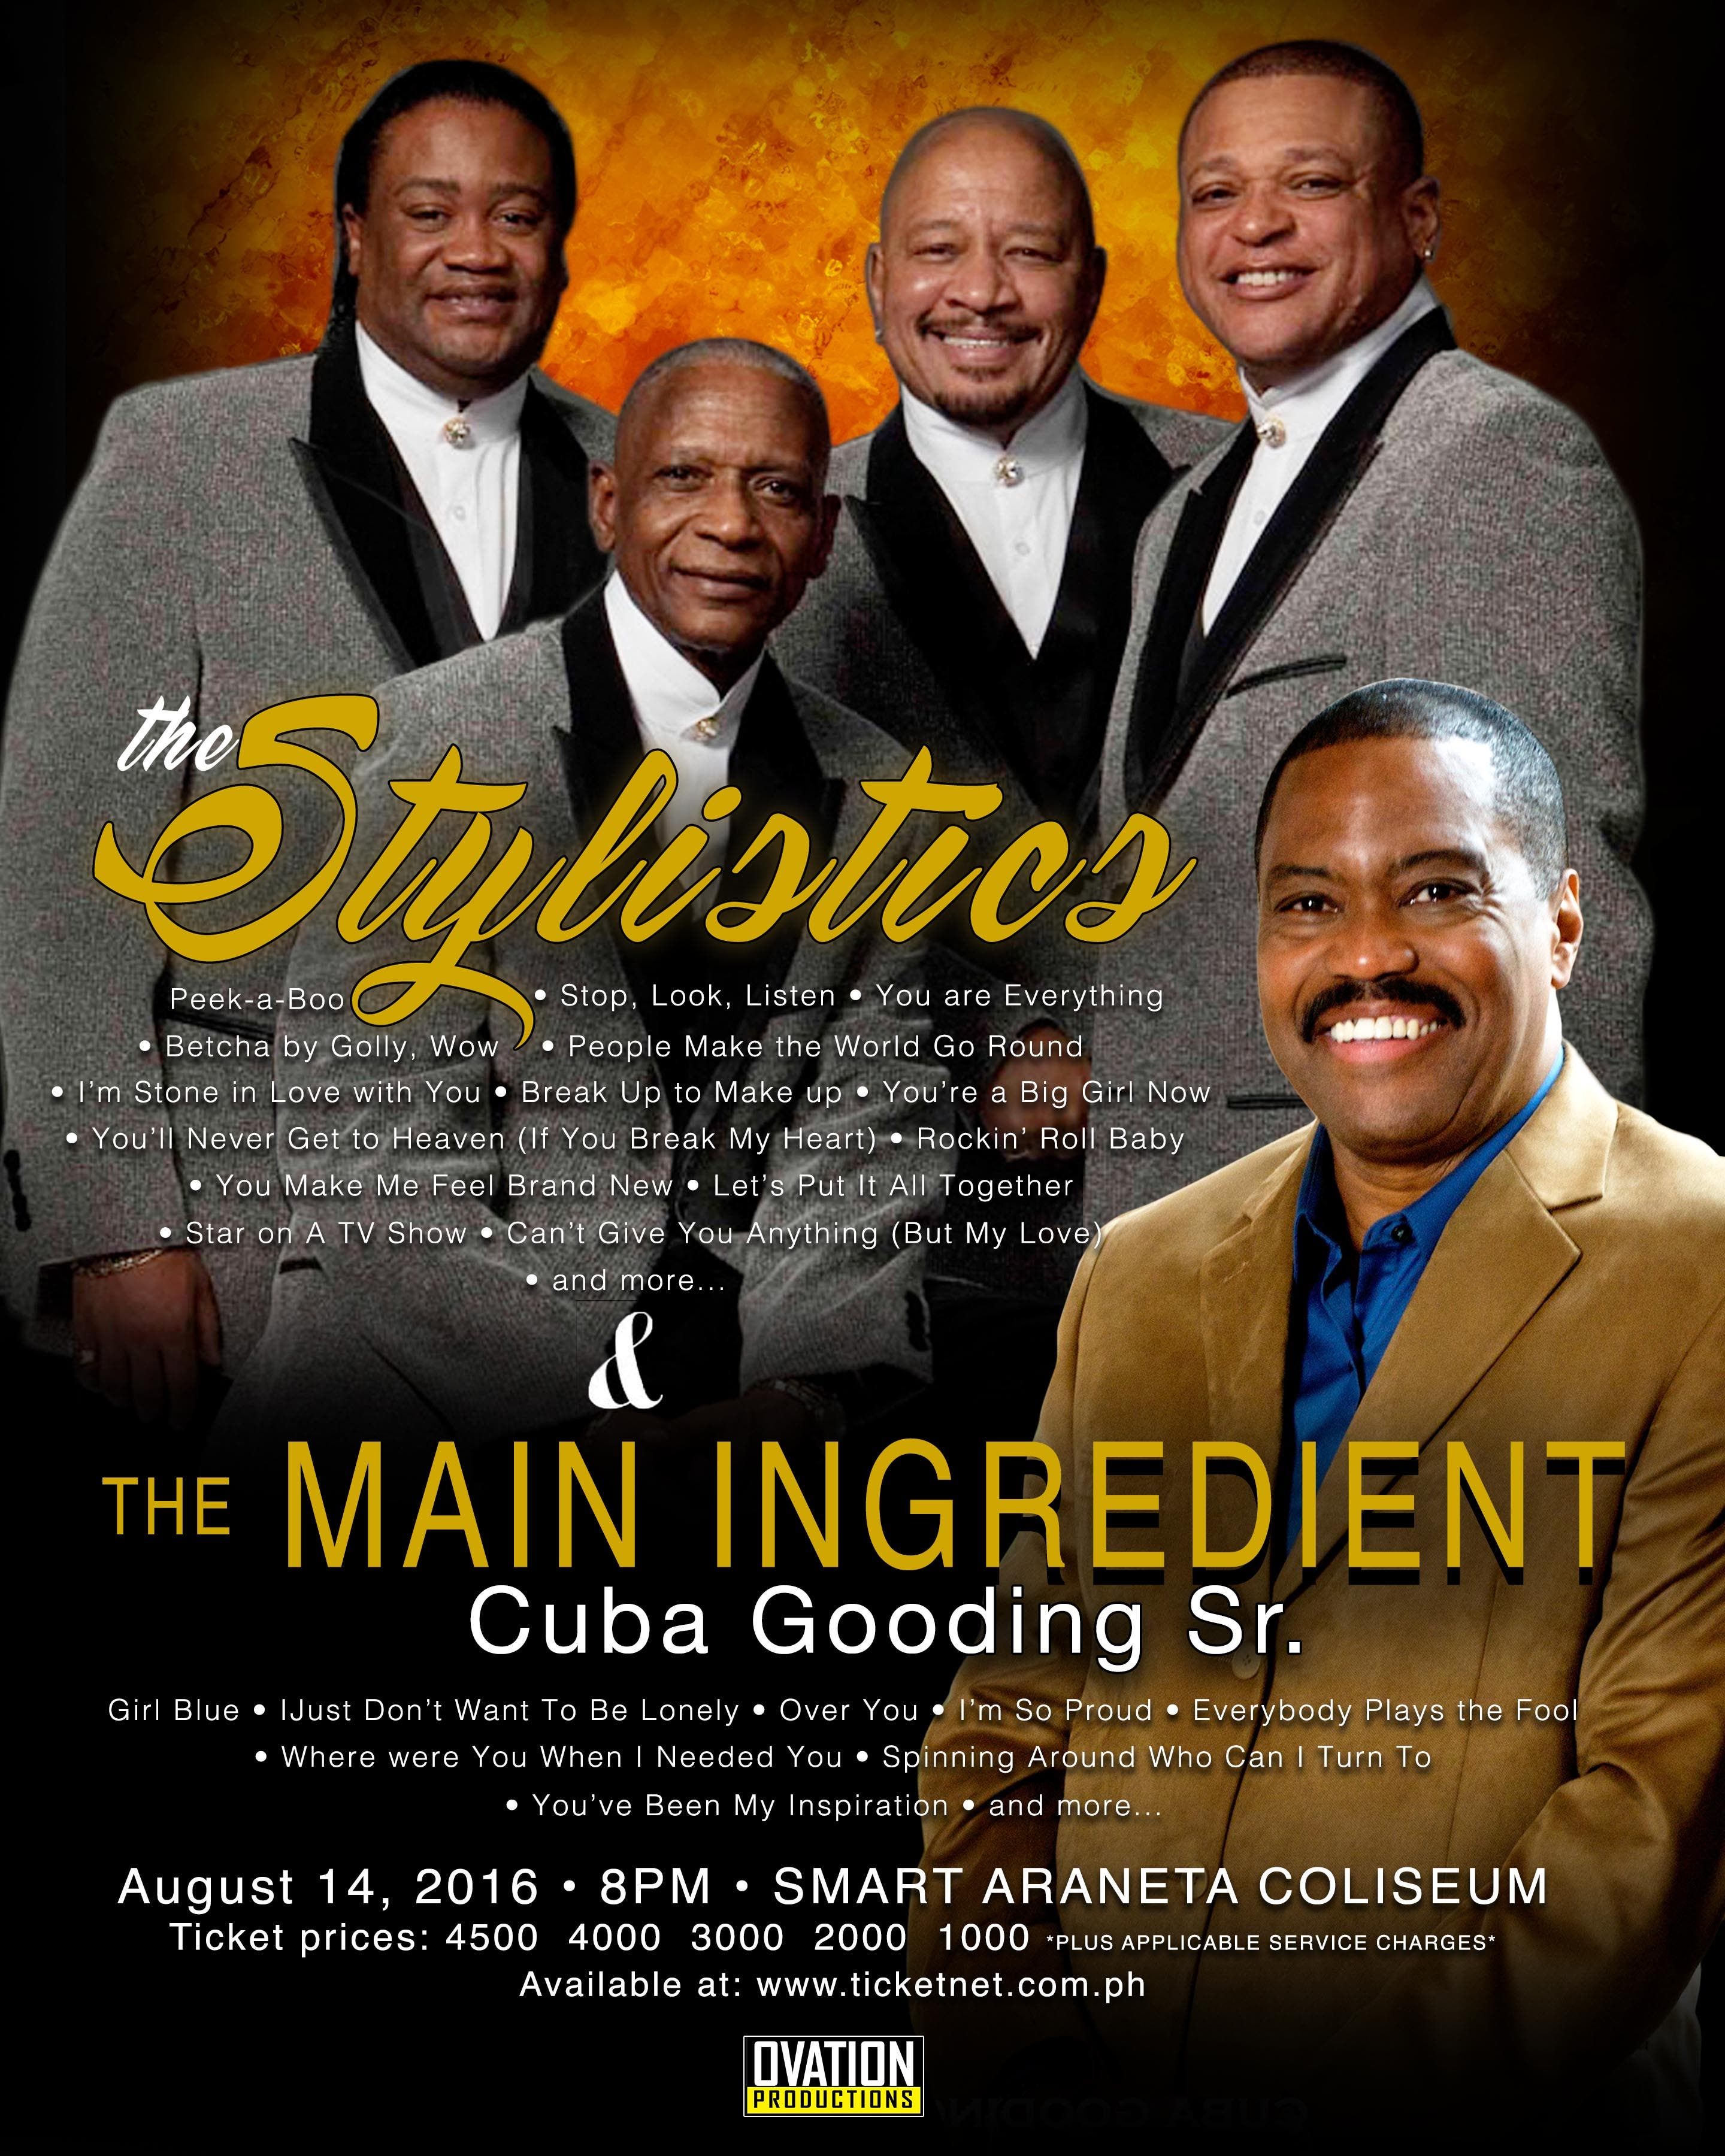 STYLISTICS AND MAIN INGREDIENT POSTER